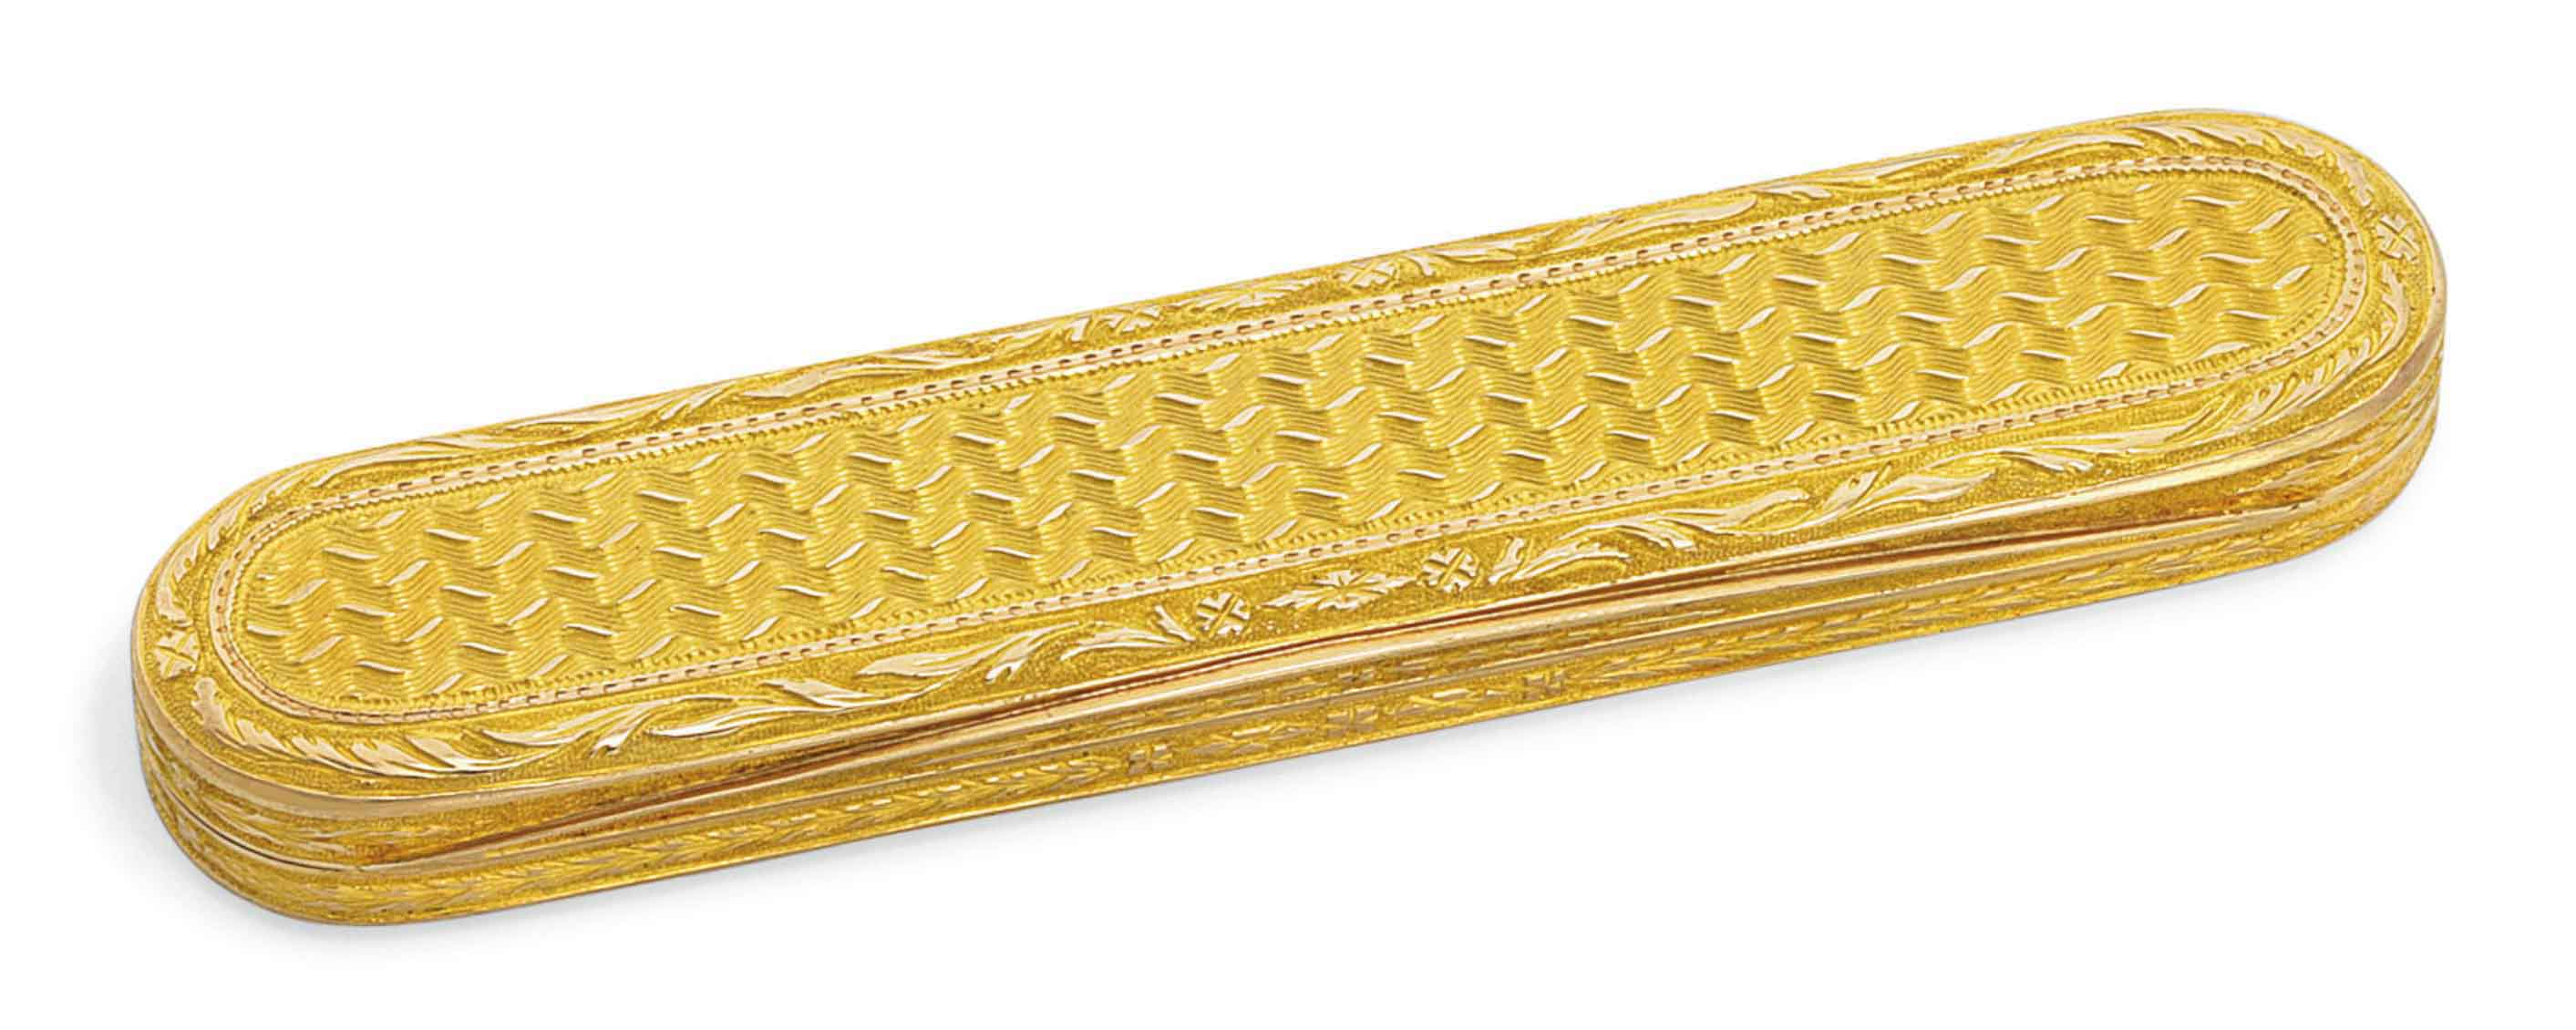 A FRENCH GOLD TOOTH-PICK CASE